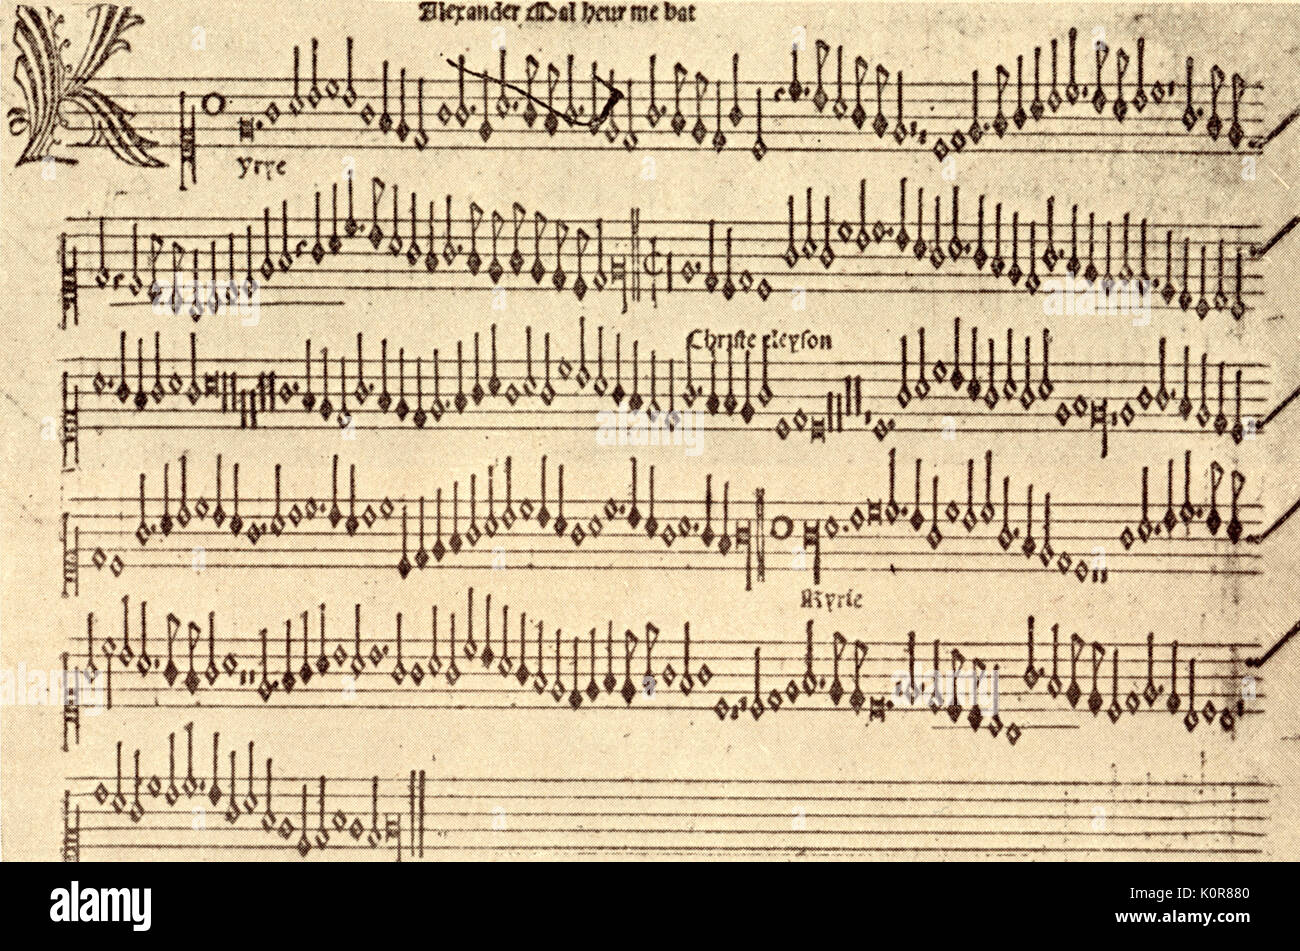 PETRUCCI, Ottaviano dei - Superius part-book of masses of Alexander Agricola (Malheur me bat, 1500). Italian music printer (1466-1539); He is the inventor of metal type for mensural music printing. - Stock Image